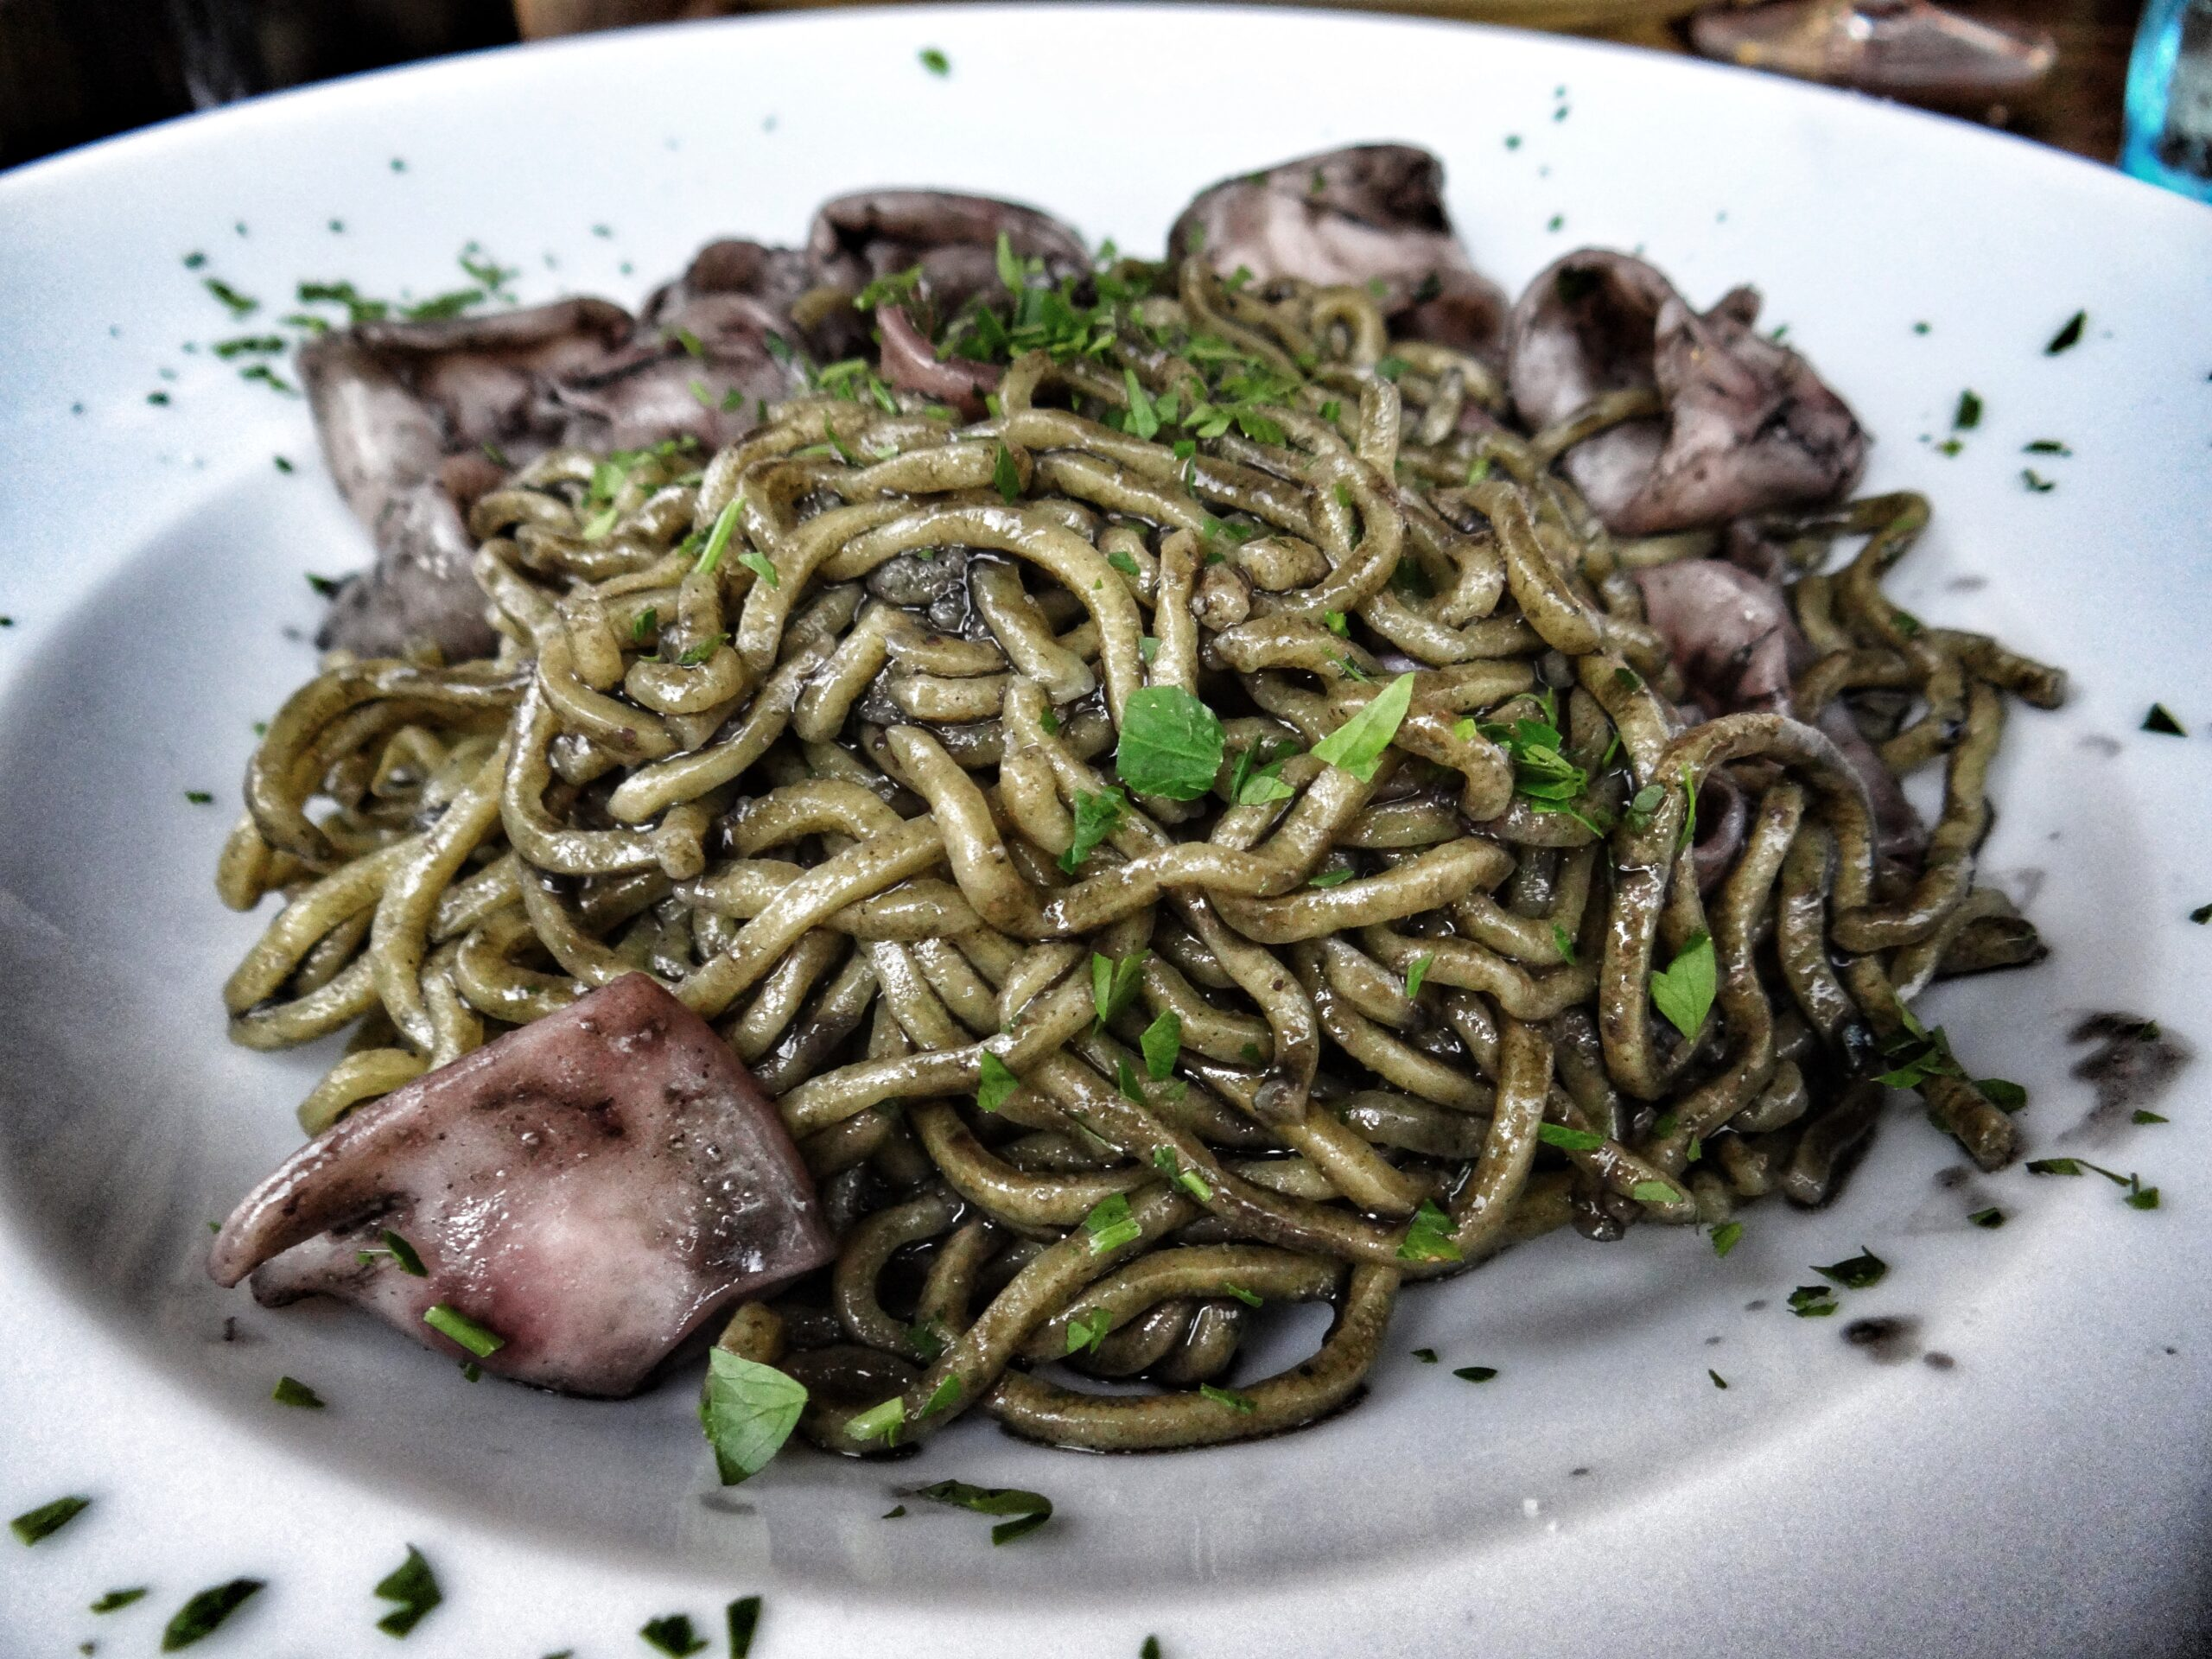 The Big Gay Podcast from Puglia guides to food in Puglia. Brought to you by gaypugliapodcast. Pasta with squid, in squid ink.